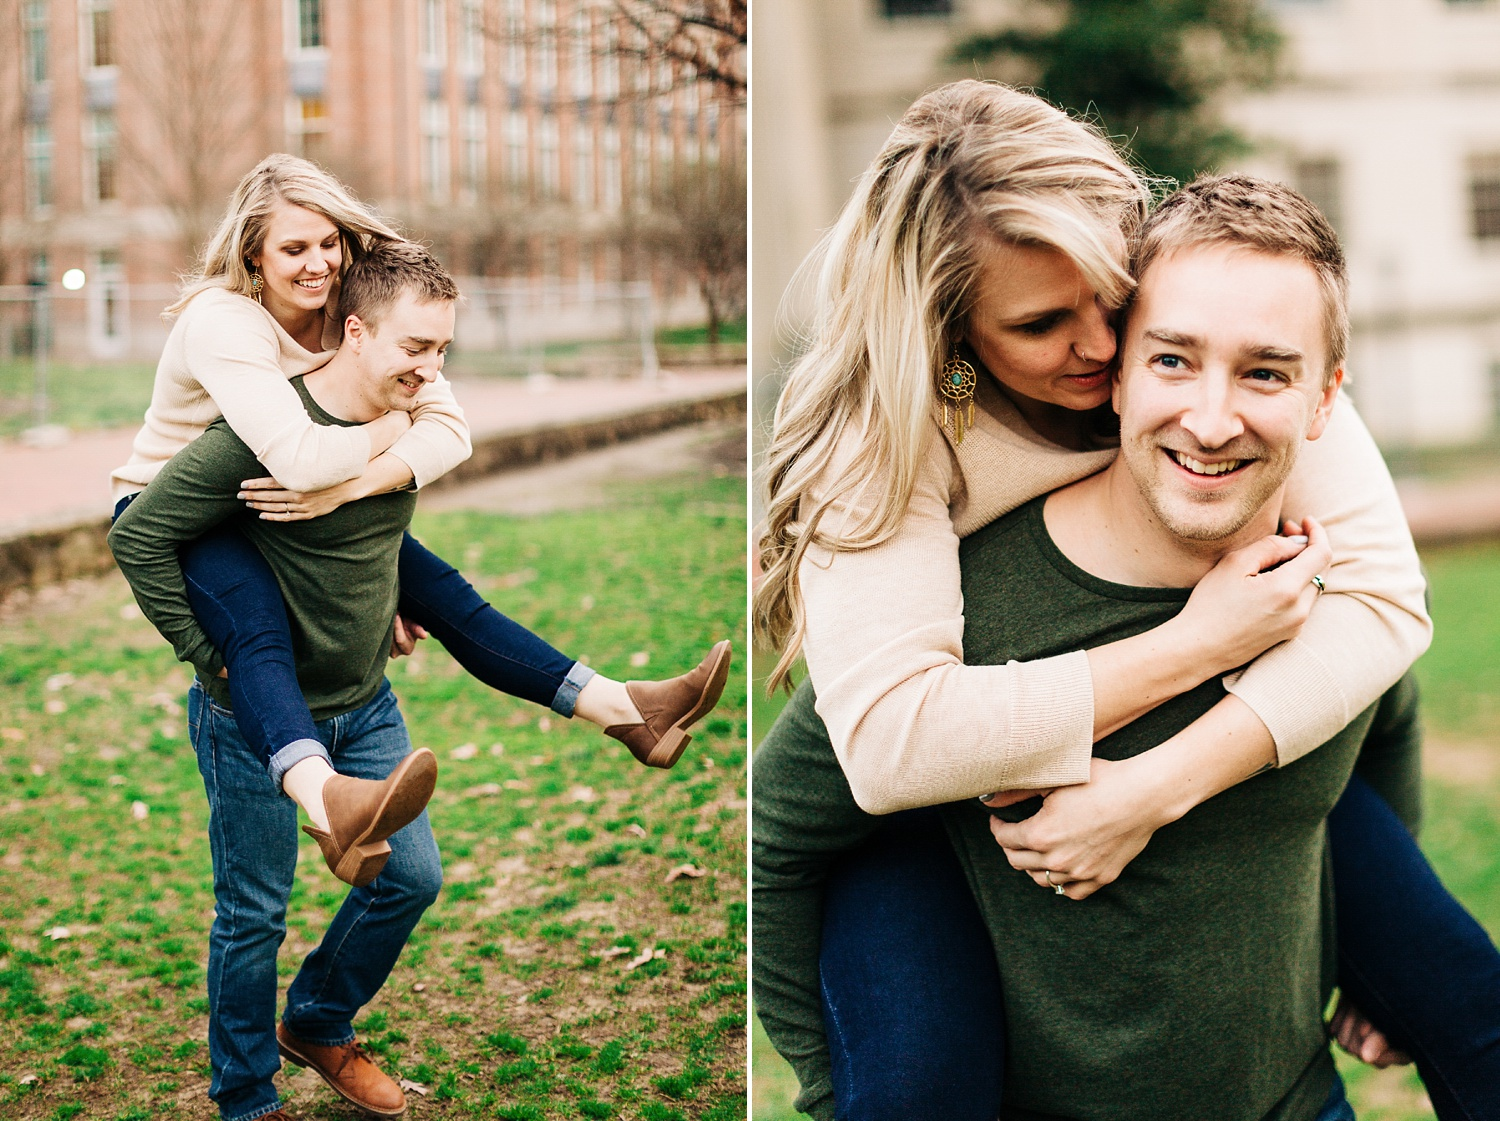 man gives his fiance a piggyback ride